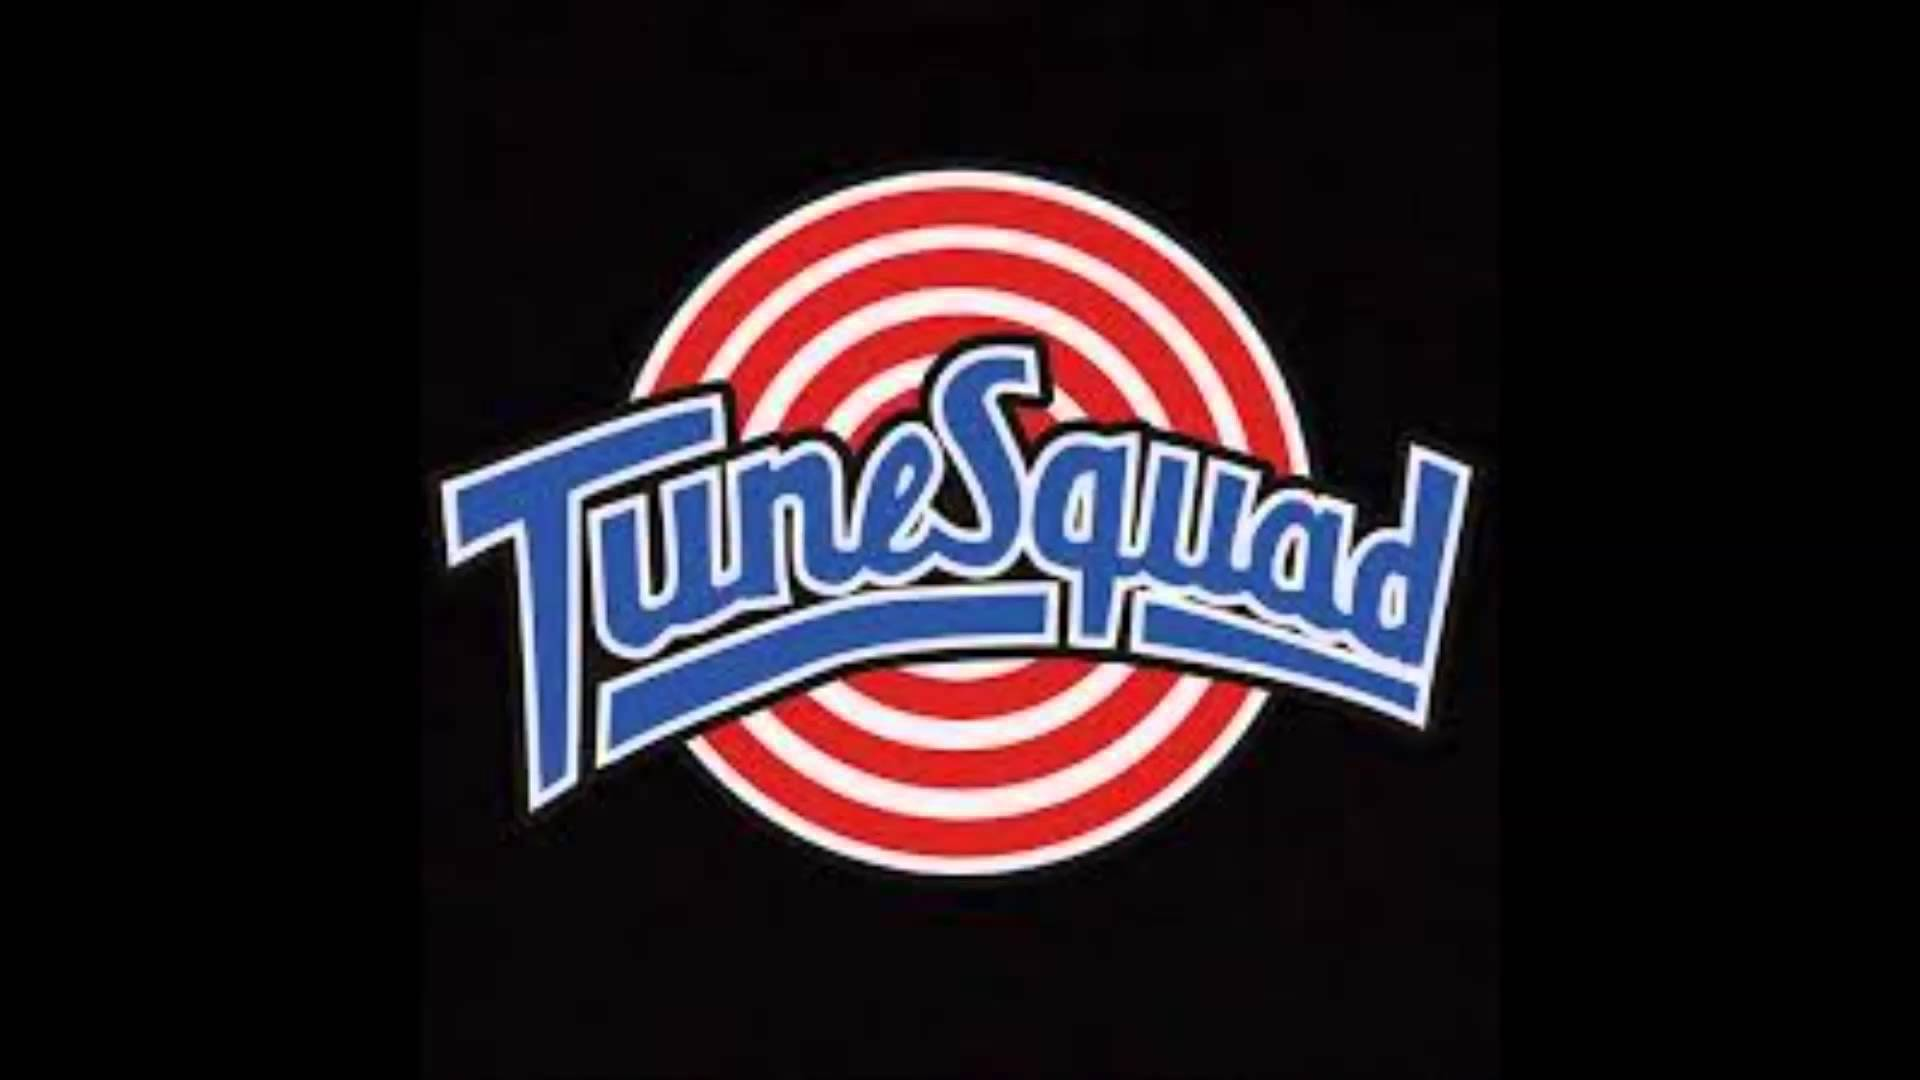 Tune Squad Wallpapers.